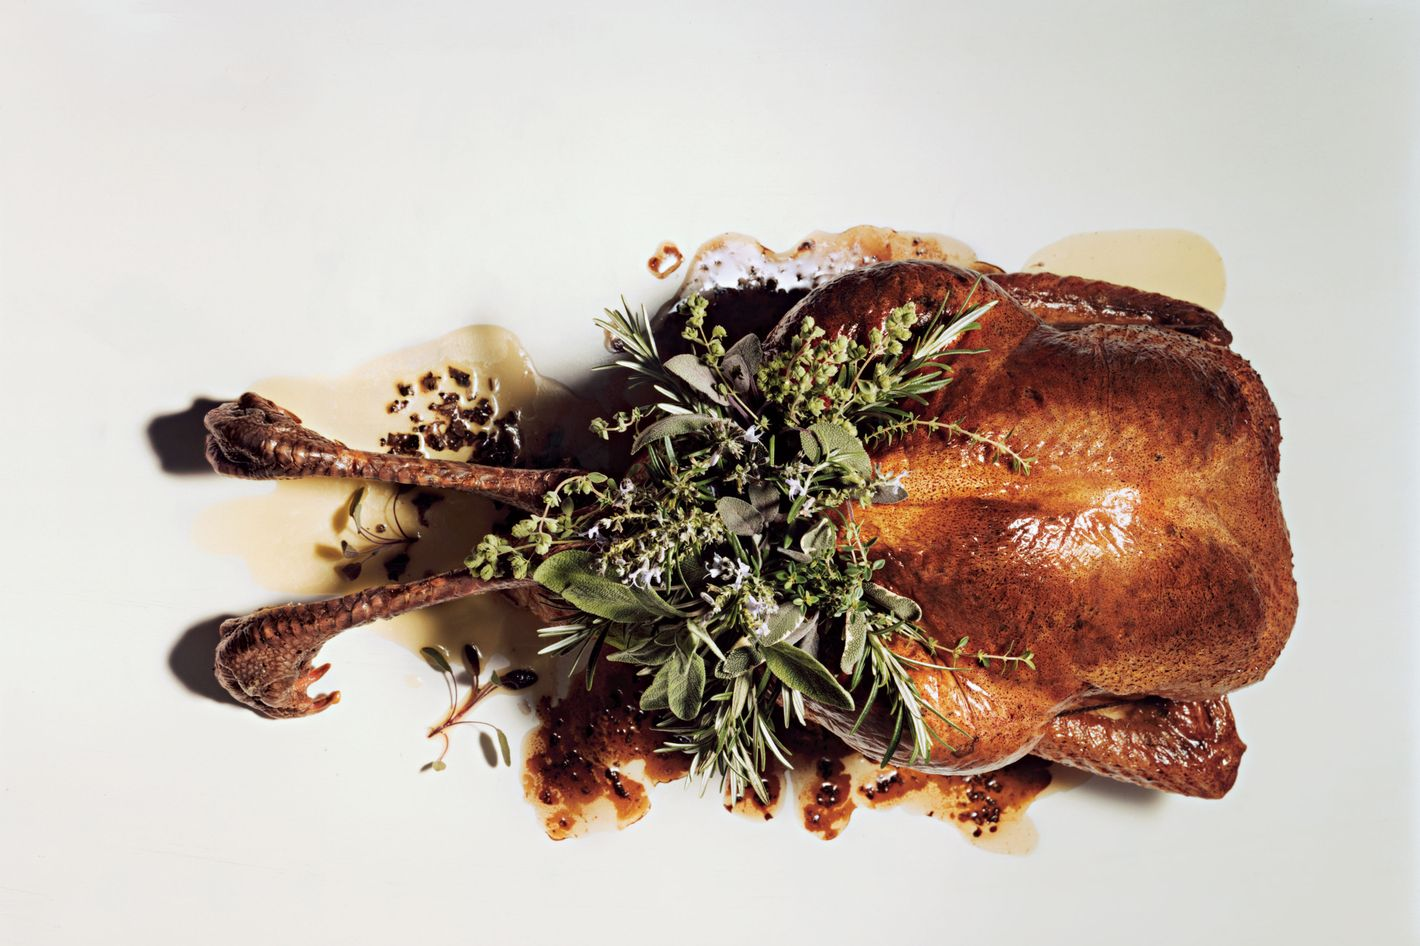 http://pixel.nymag.com/imgs/daily/grub/2012/11/03/03-holiday-foods-recipes.jpg